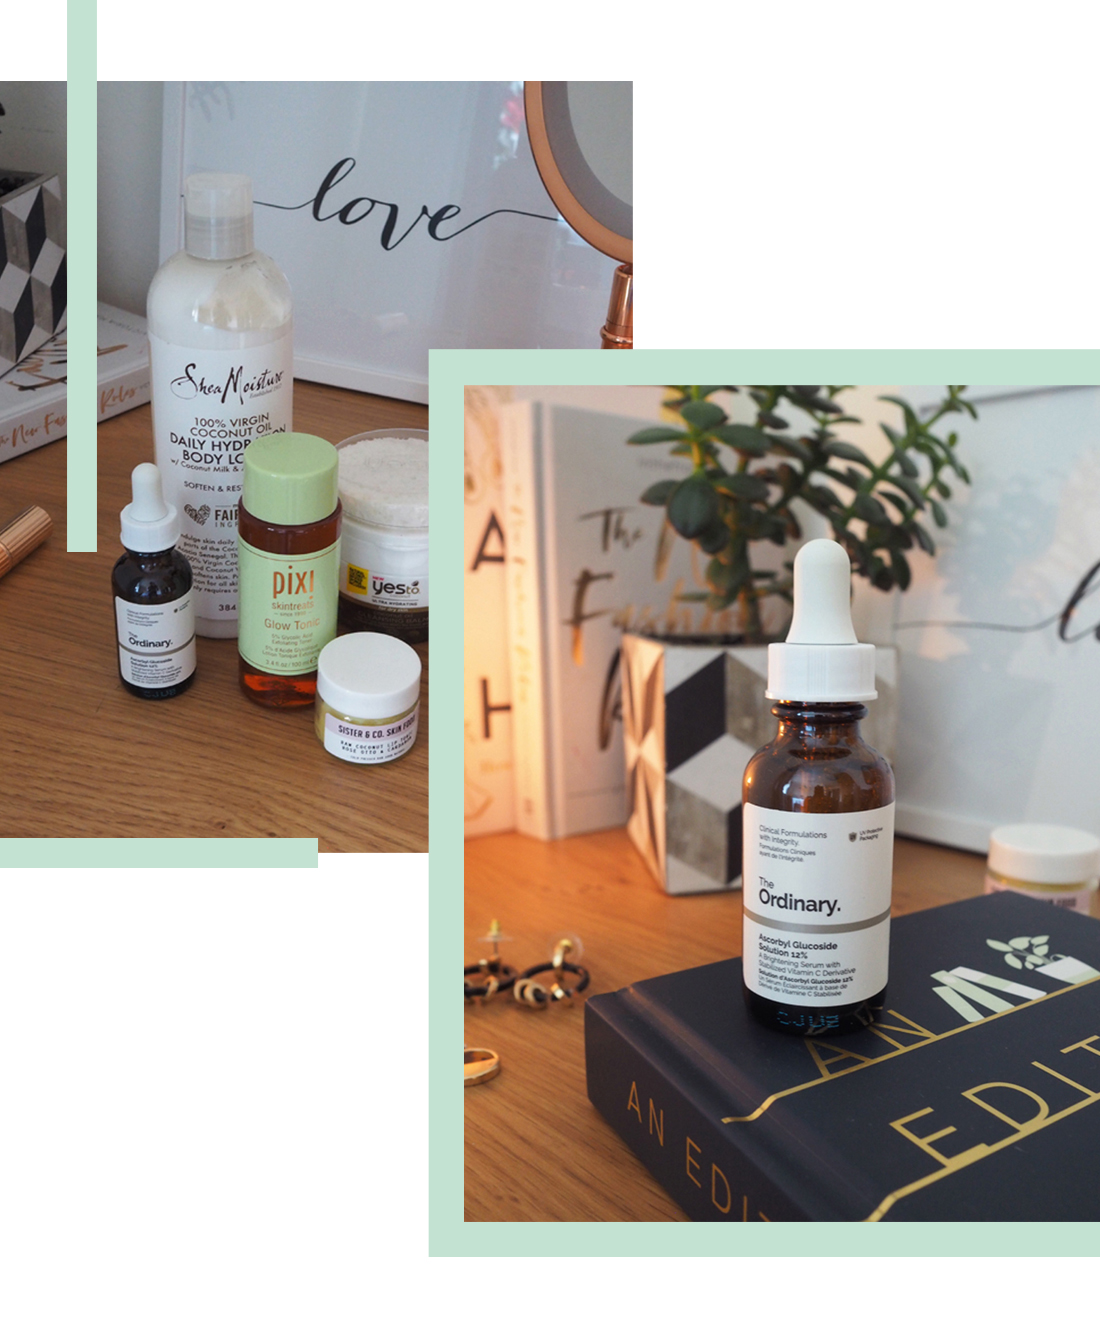 The Ordinary - Ethical Skincare on Asos | MadeUpStyle